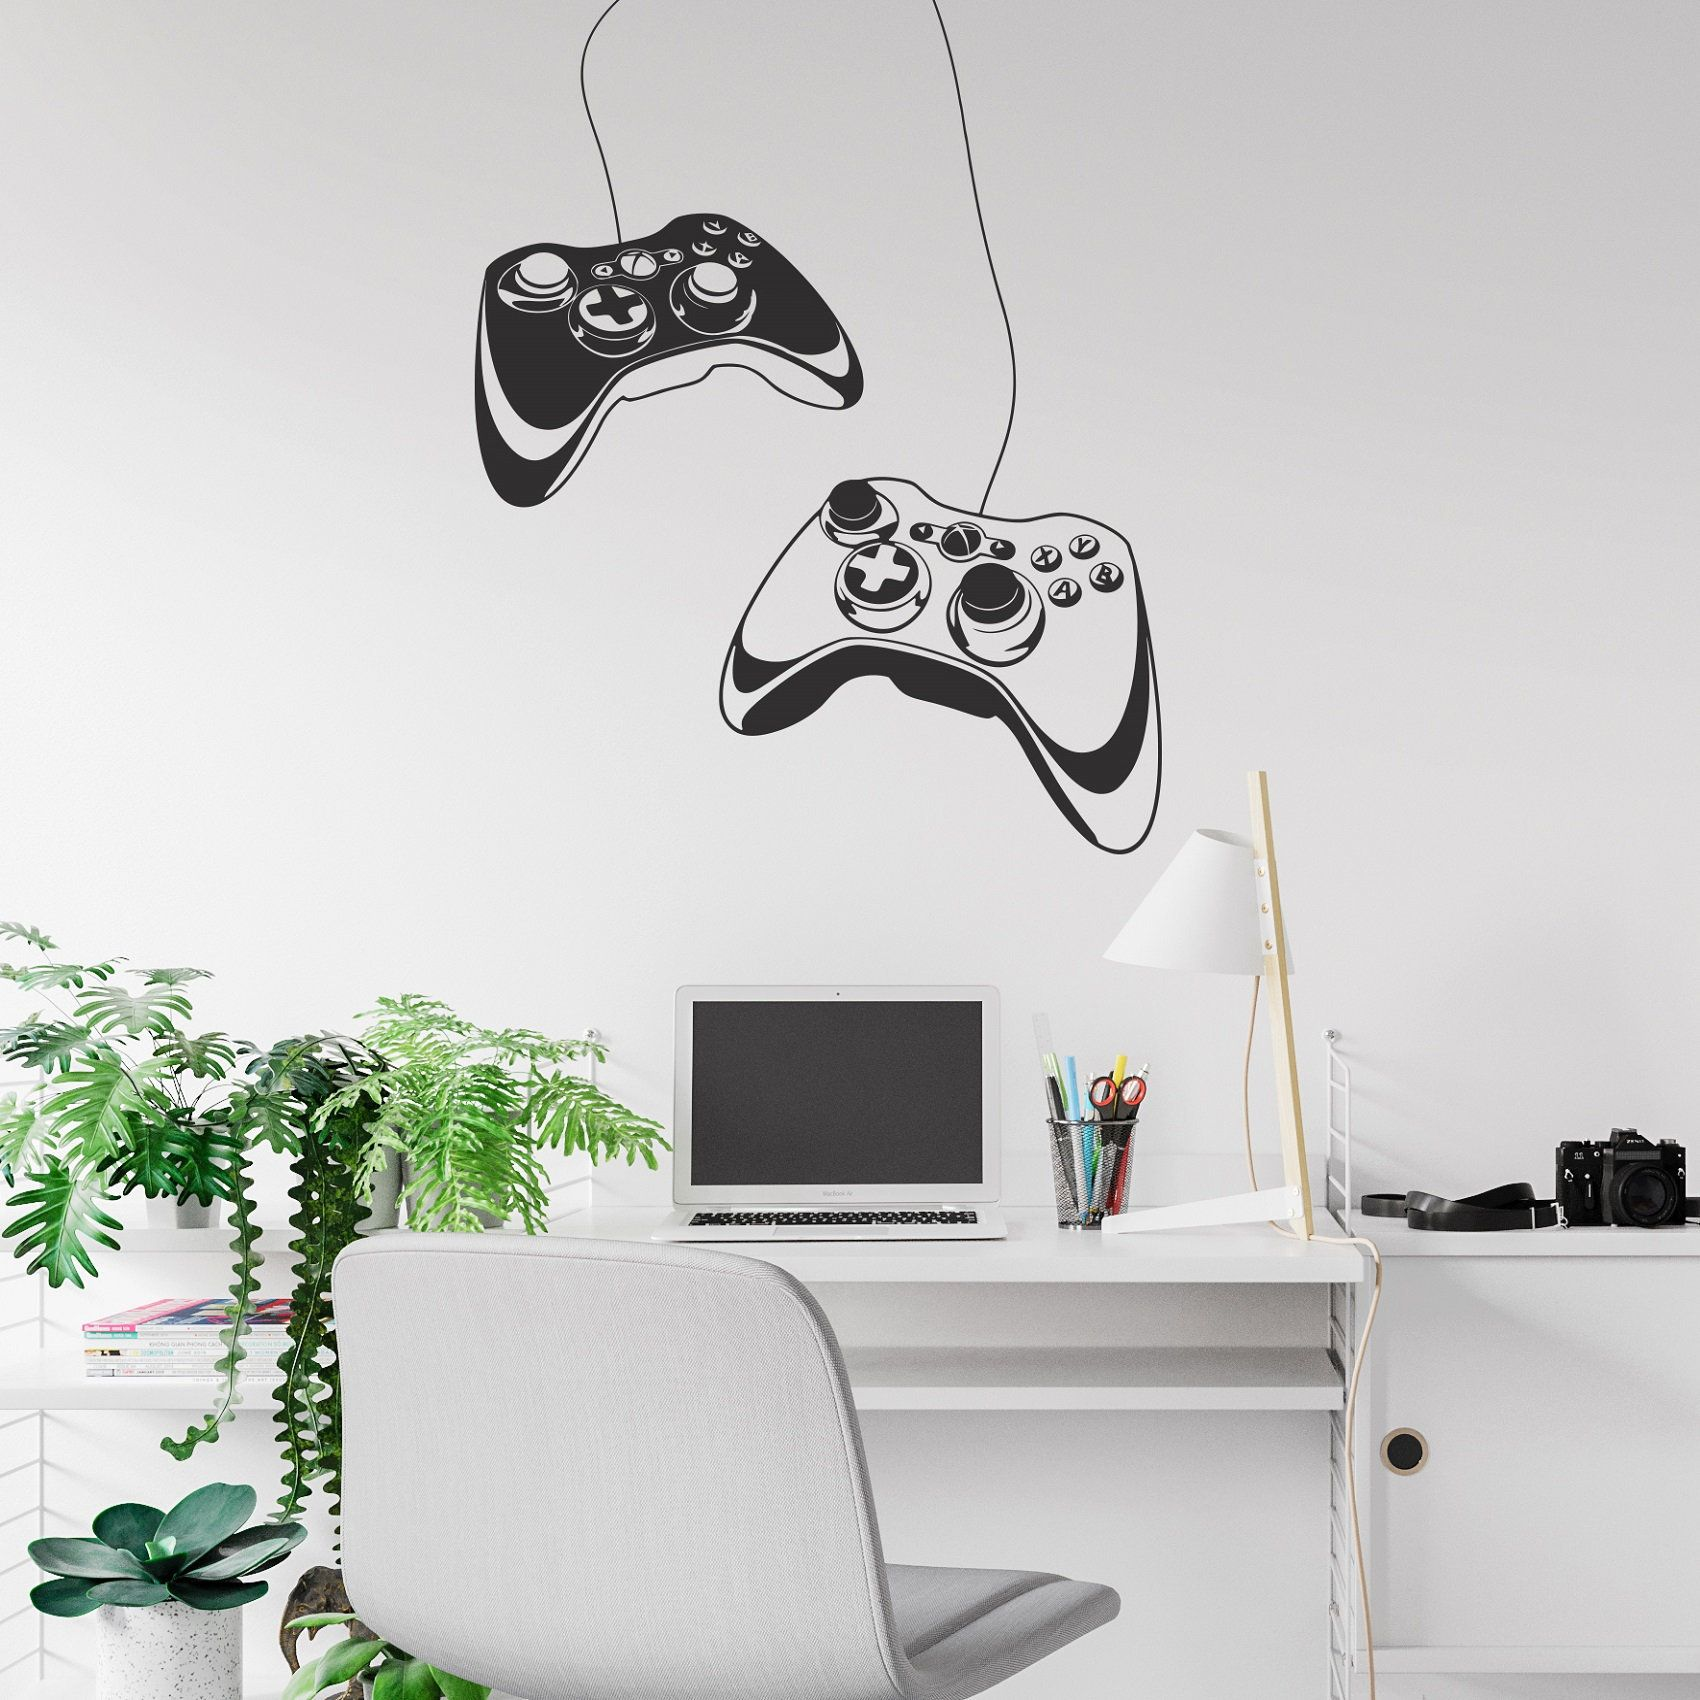 Gaming Controller Wall Decal - Xbox Game Controller Wall Sticker, Gamer Wall Decal, Video Games Wall Decal, Gamer Room Decor Boys Teens SB32